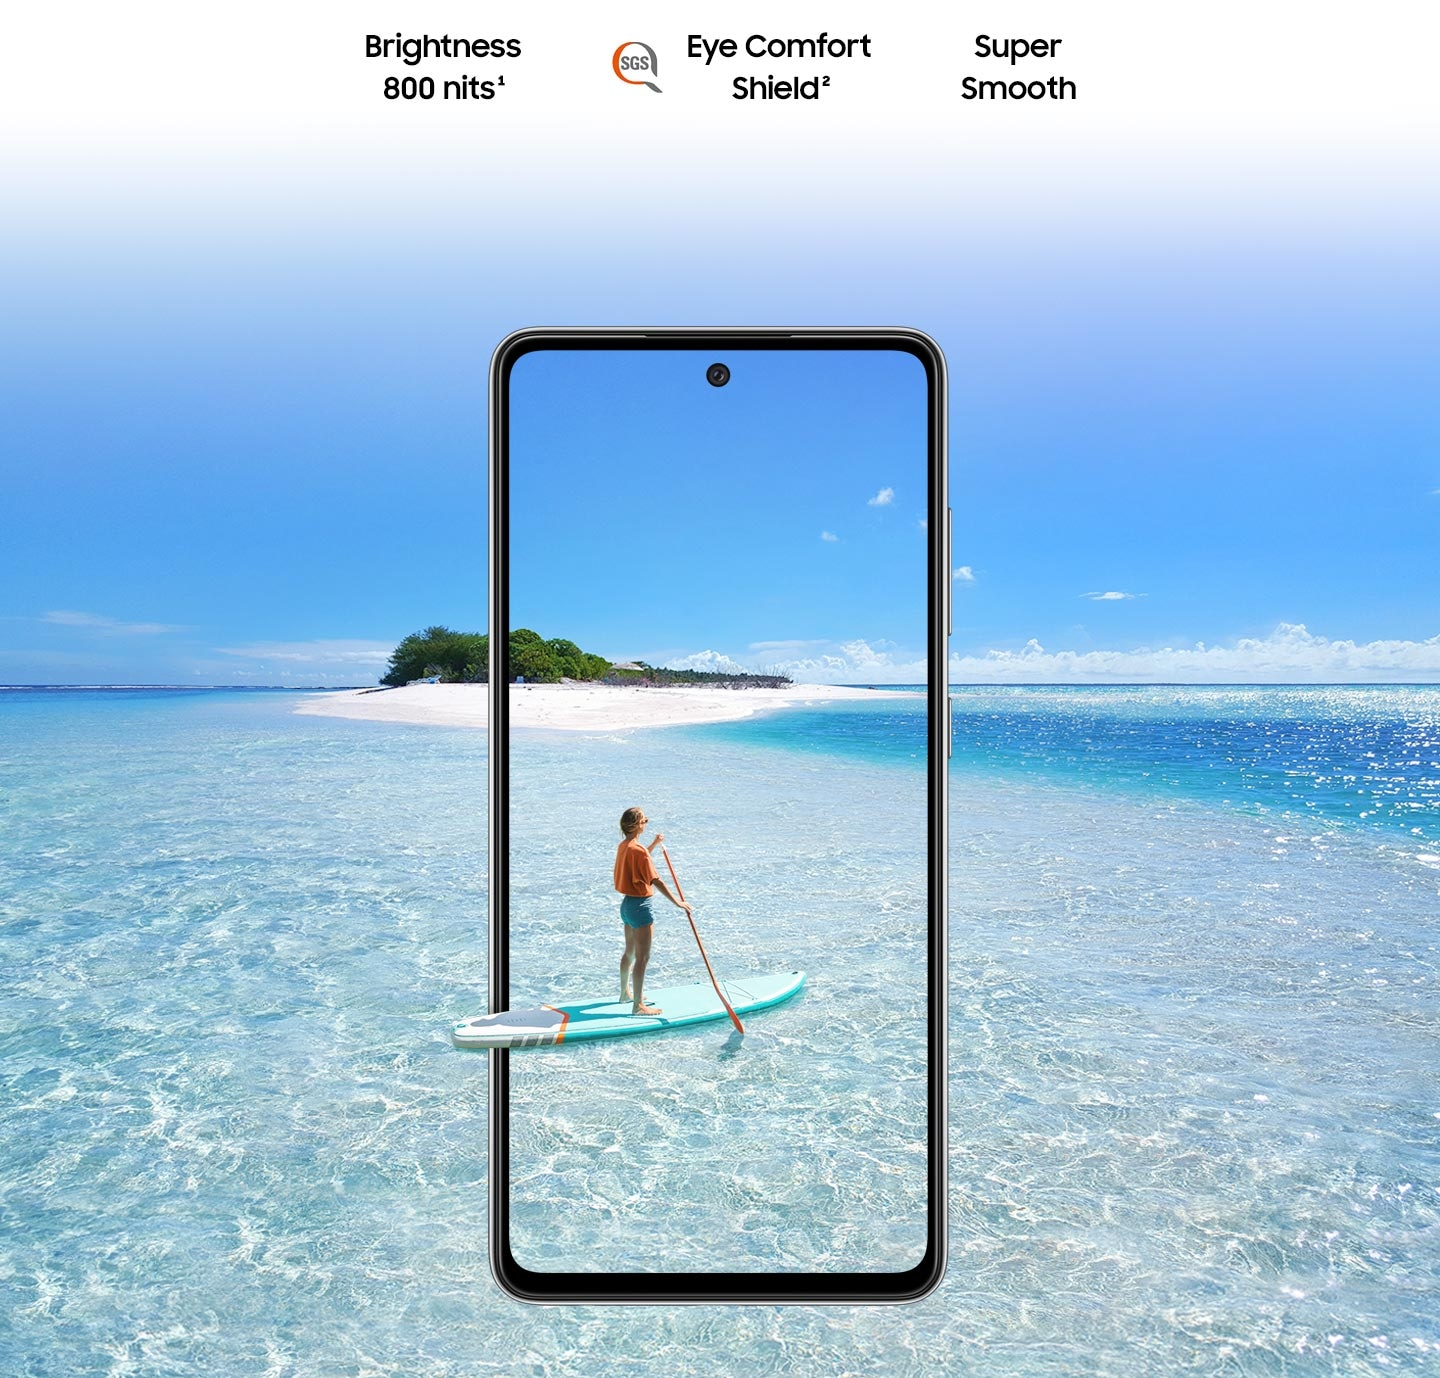 Galaxy A52s 5G seen from the front. Behind the phone and inside the display is a scene of a body of water and a small island. On the phone's screen is a person paddleboarding, and their paddleboard extends slightly outside the boundaries of the phone to represent the screen's immersive view. Text says Super Smooth, Brightness 800 nits and Eye Comfort Shield, with the SGS logo.